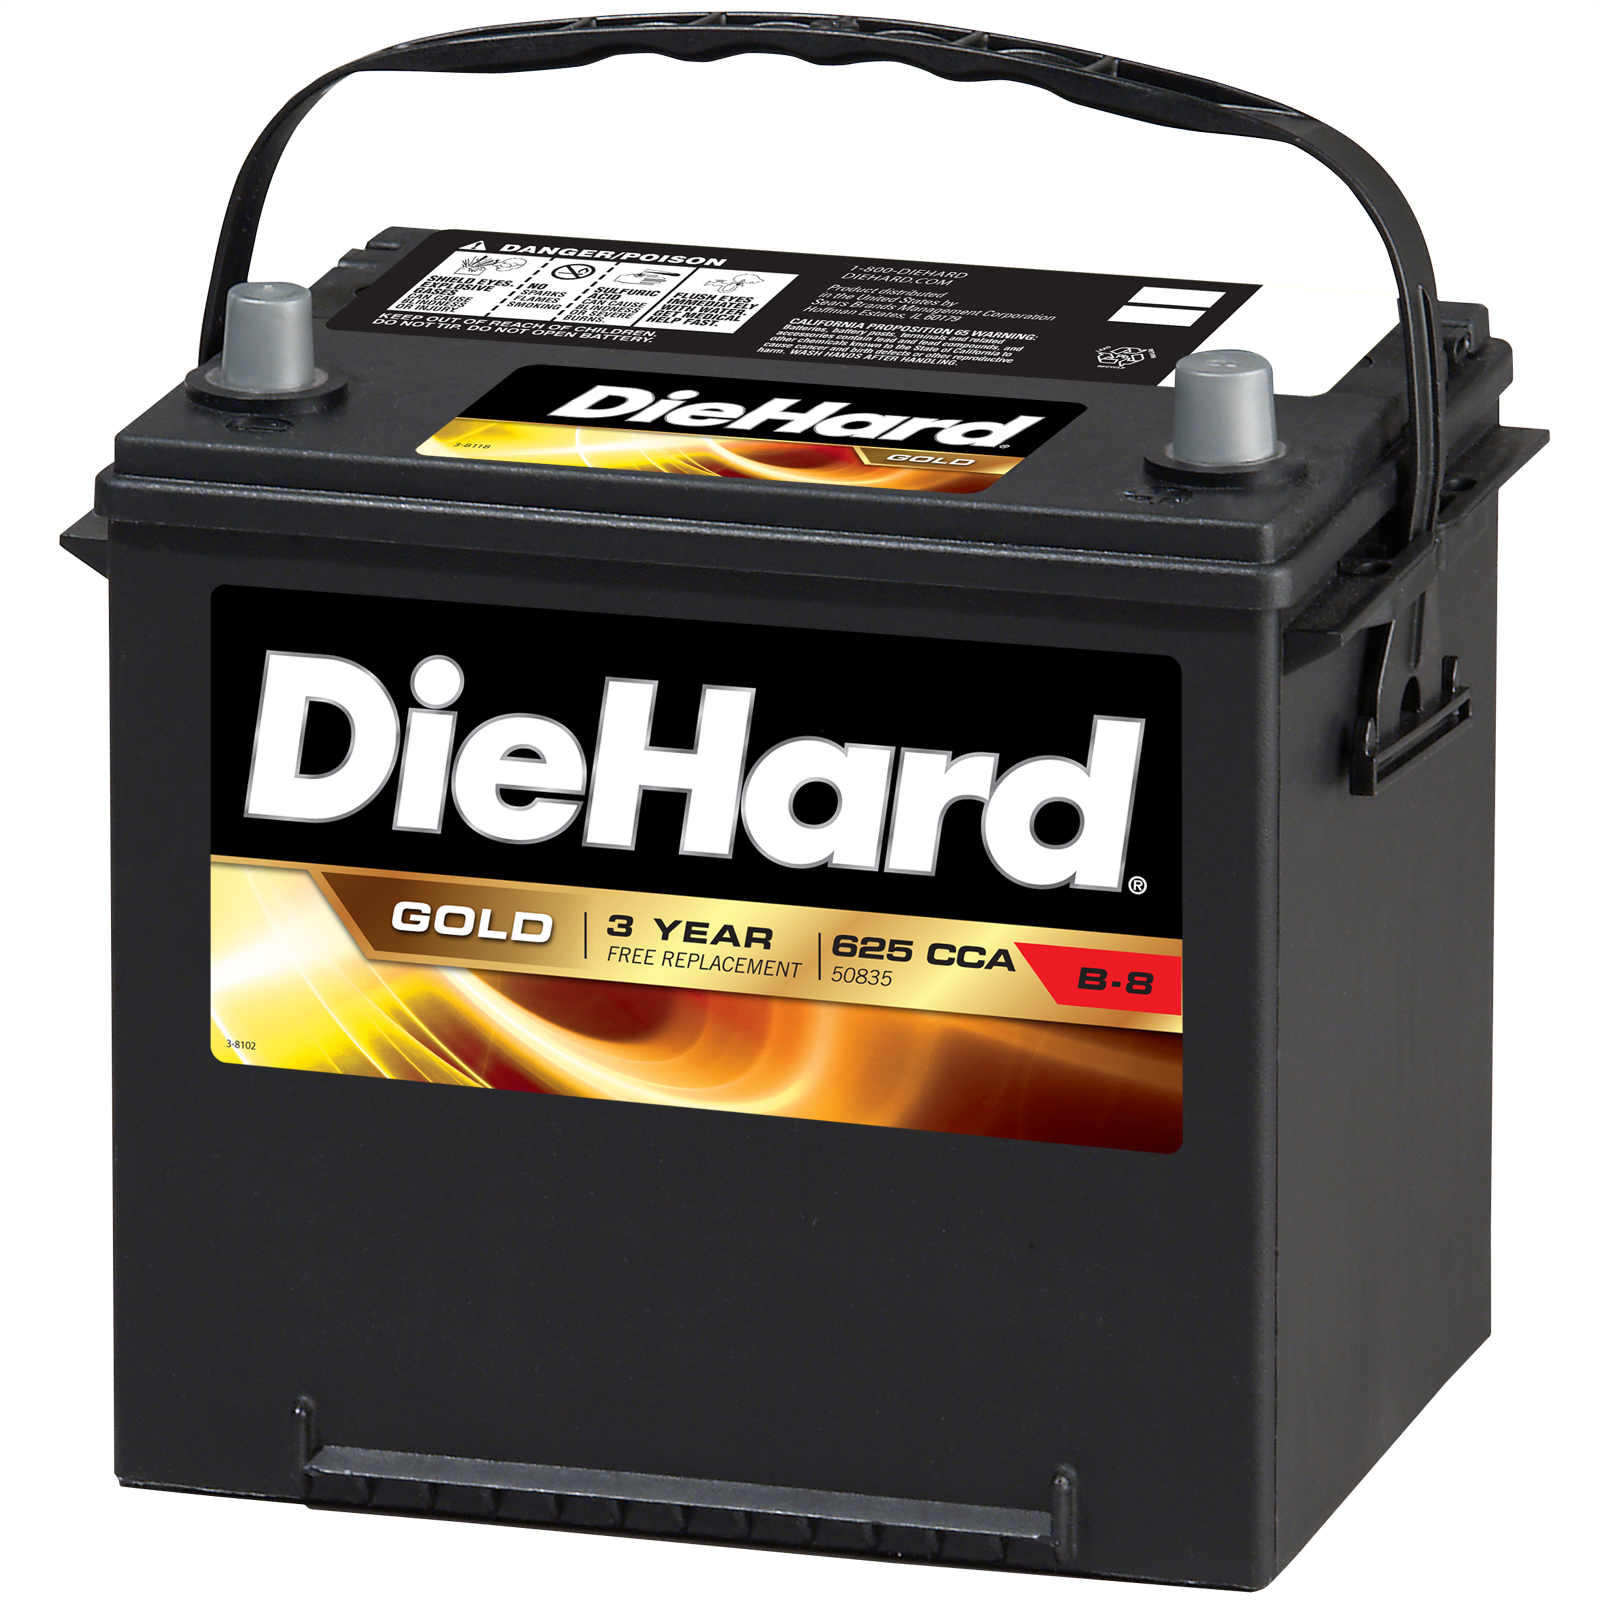 Value Craft Battery Warranty